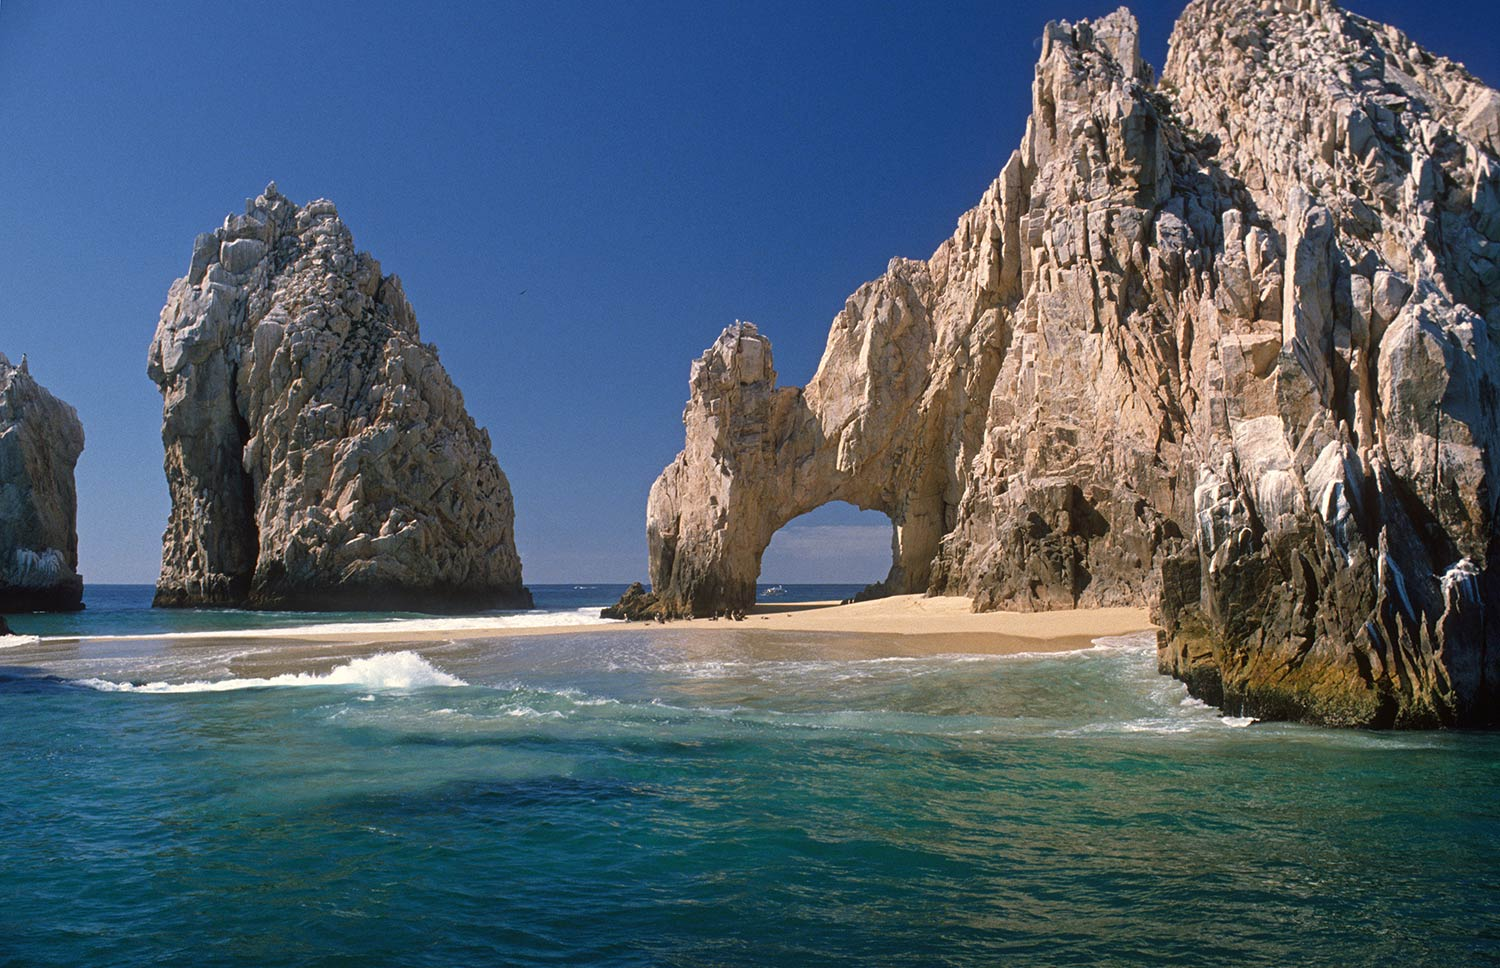 The famous stone arch at Land's End Cabo San Lucas with sand under the arch.